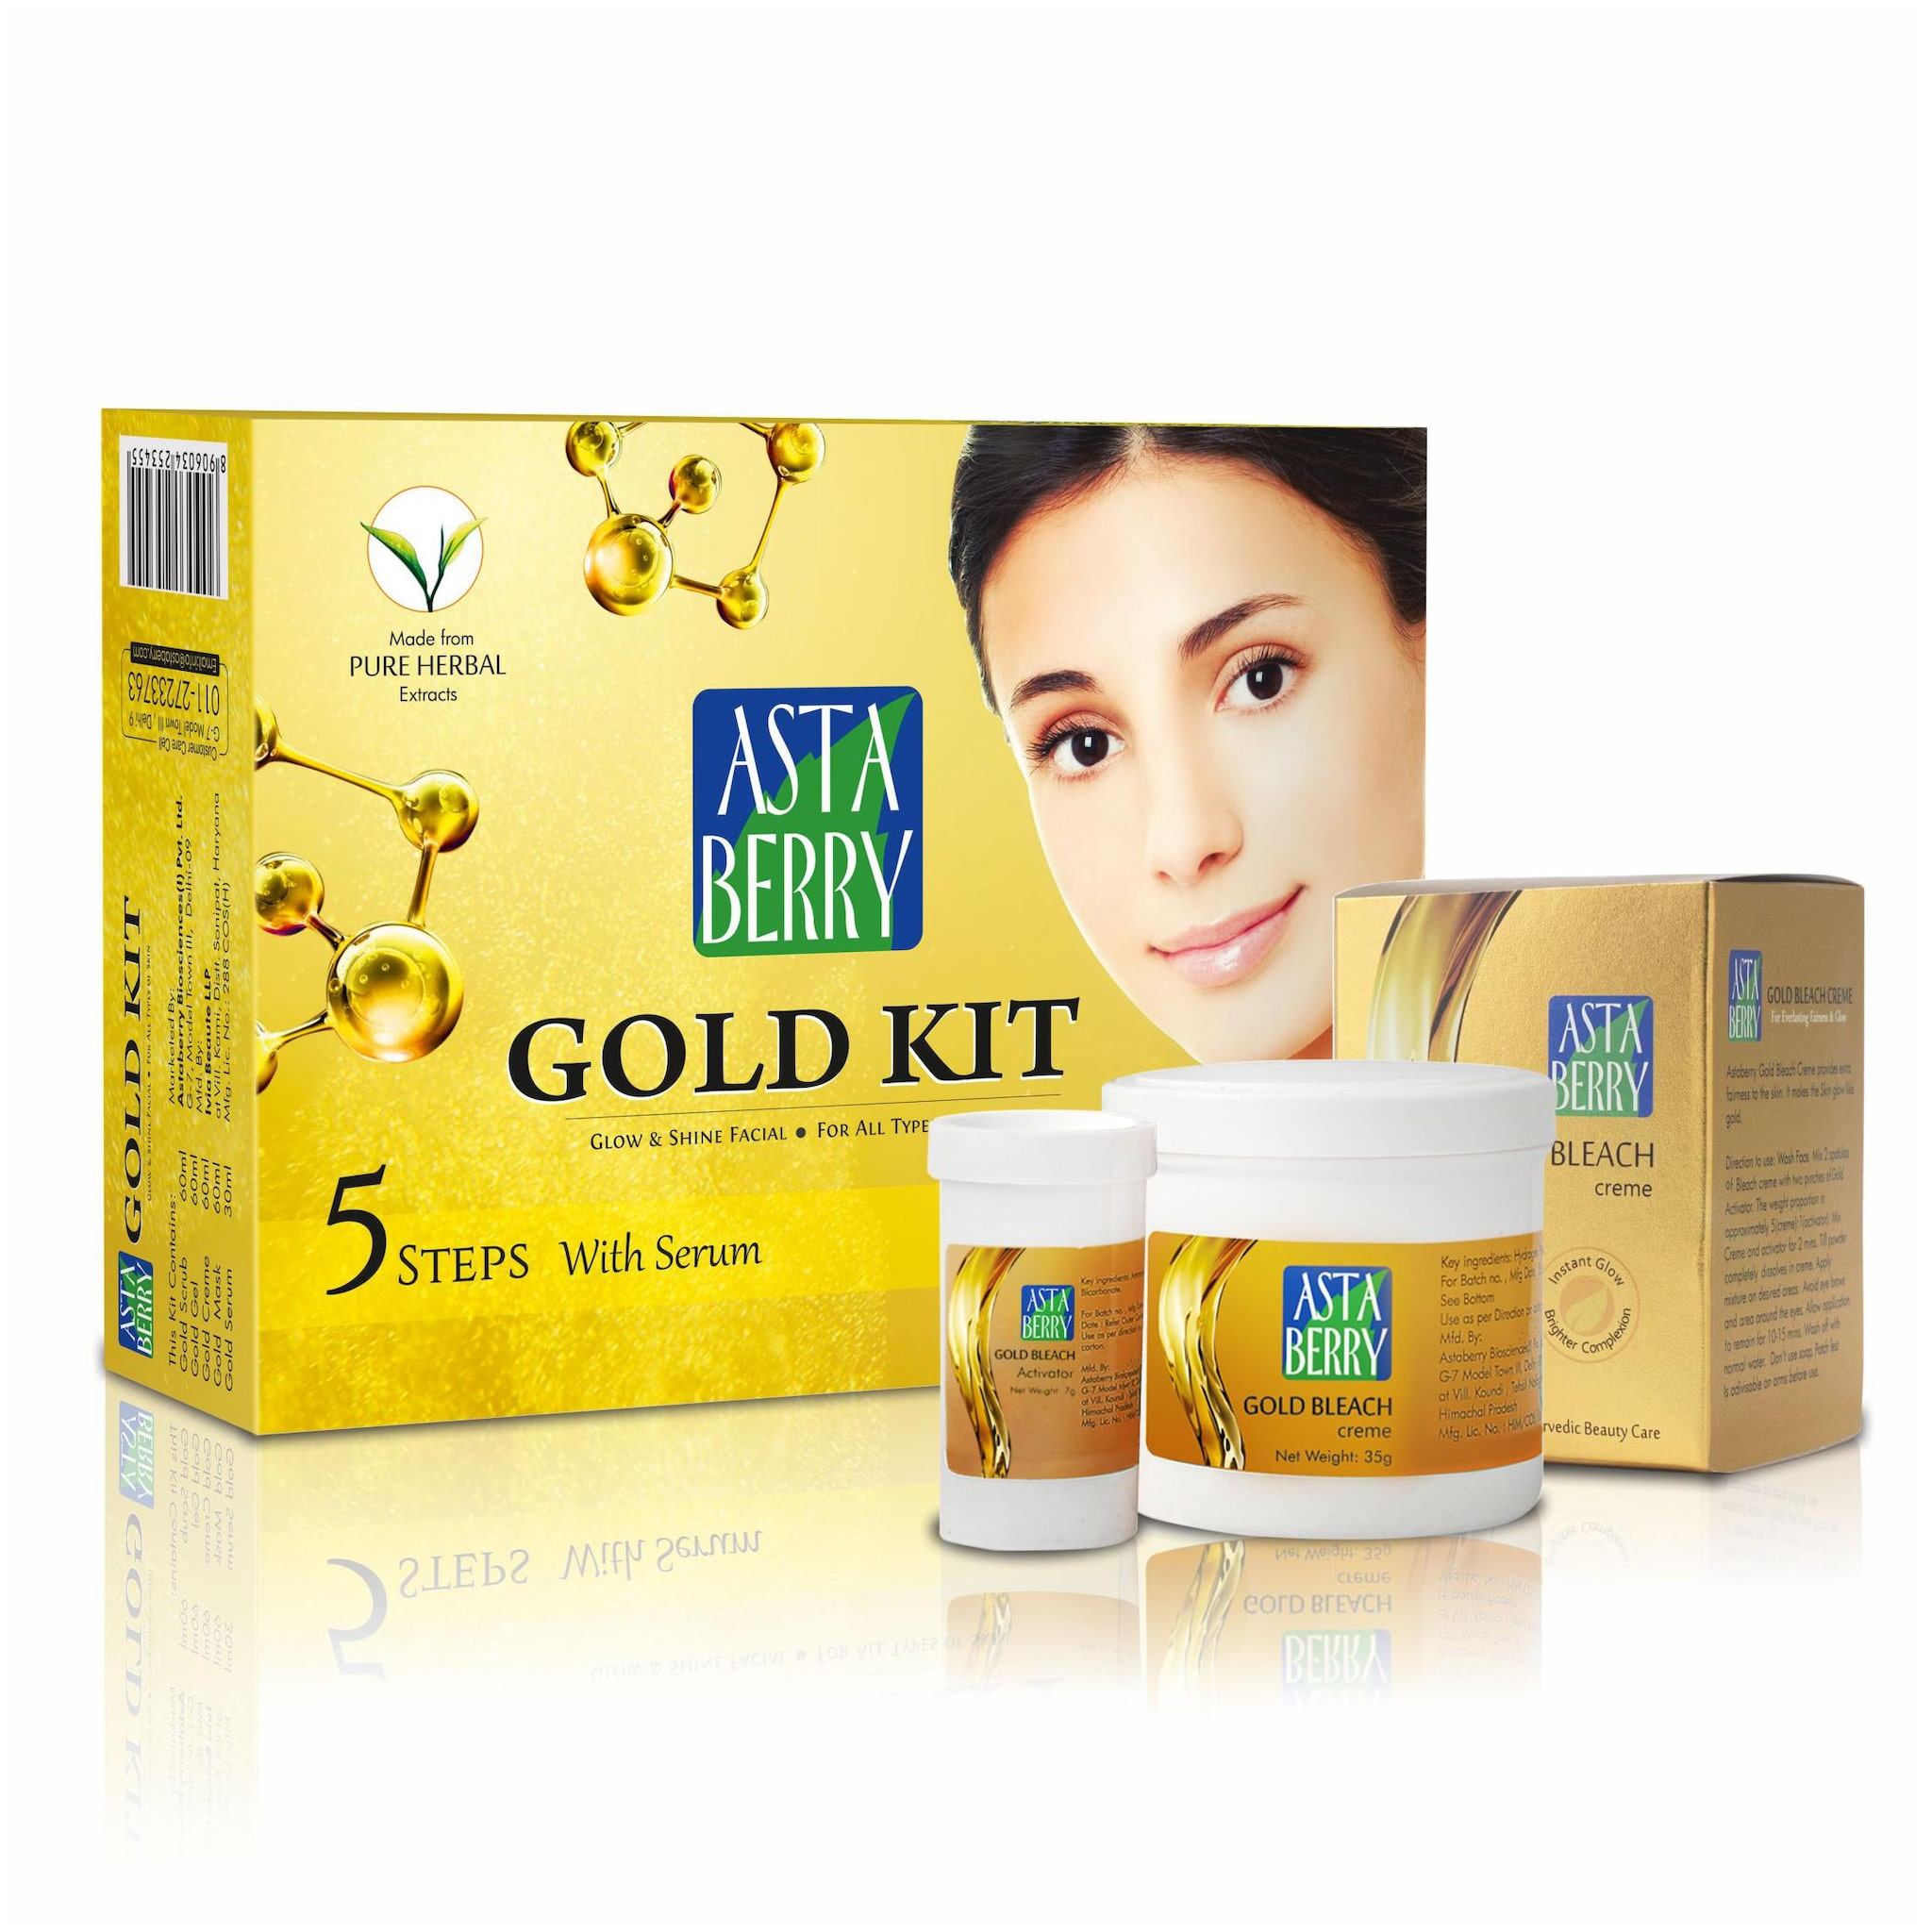 Astaberry Gold Facial Kit 5 Steps 270g With Gold Bleach 42g Skin Brightening